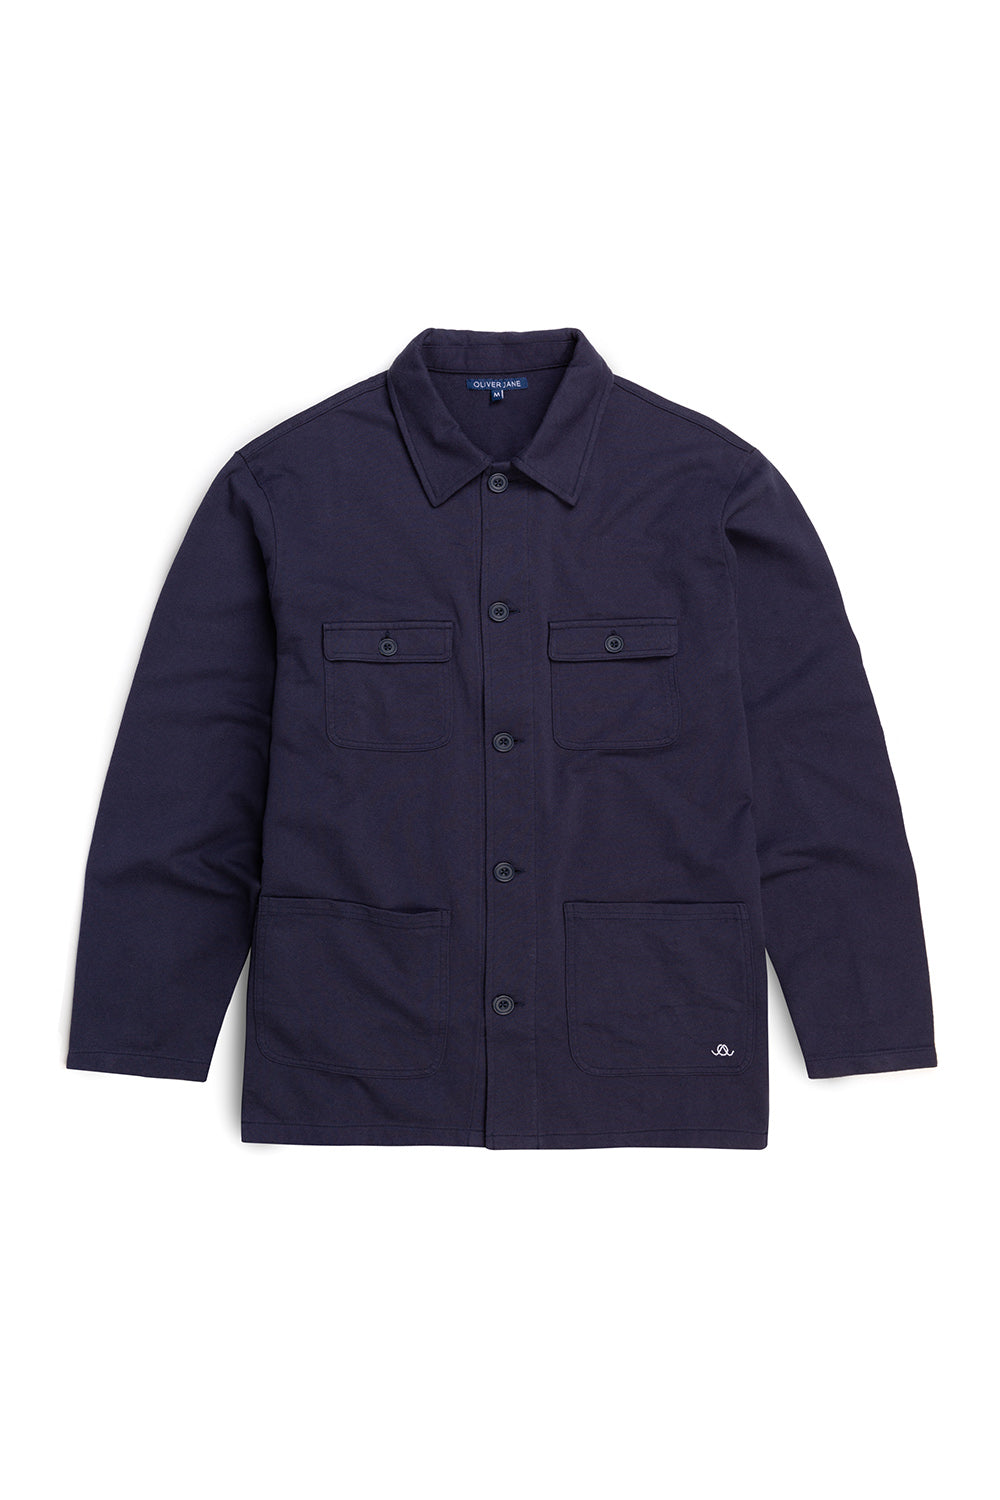 The Navy Four Pocket Overshirt